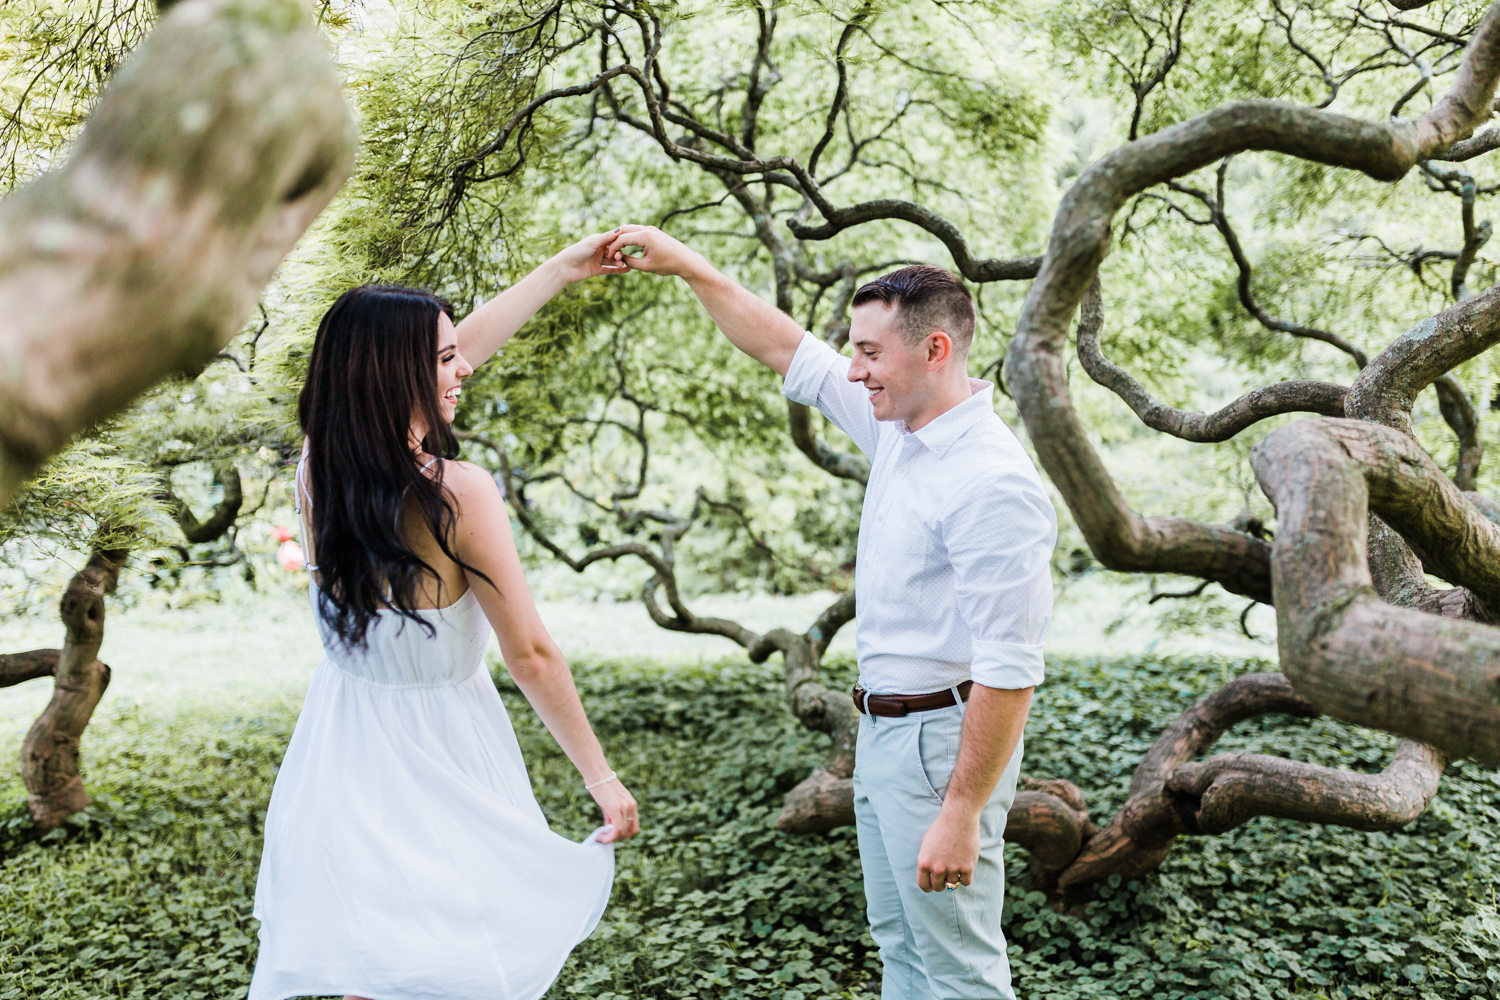 best wedding venues in baltimore, maryland - unique engagement session locations in maryland